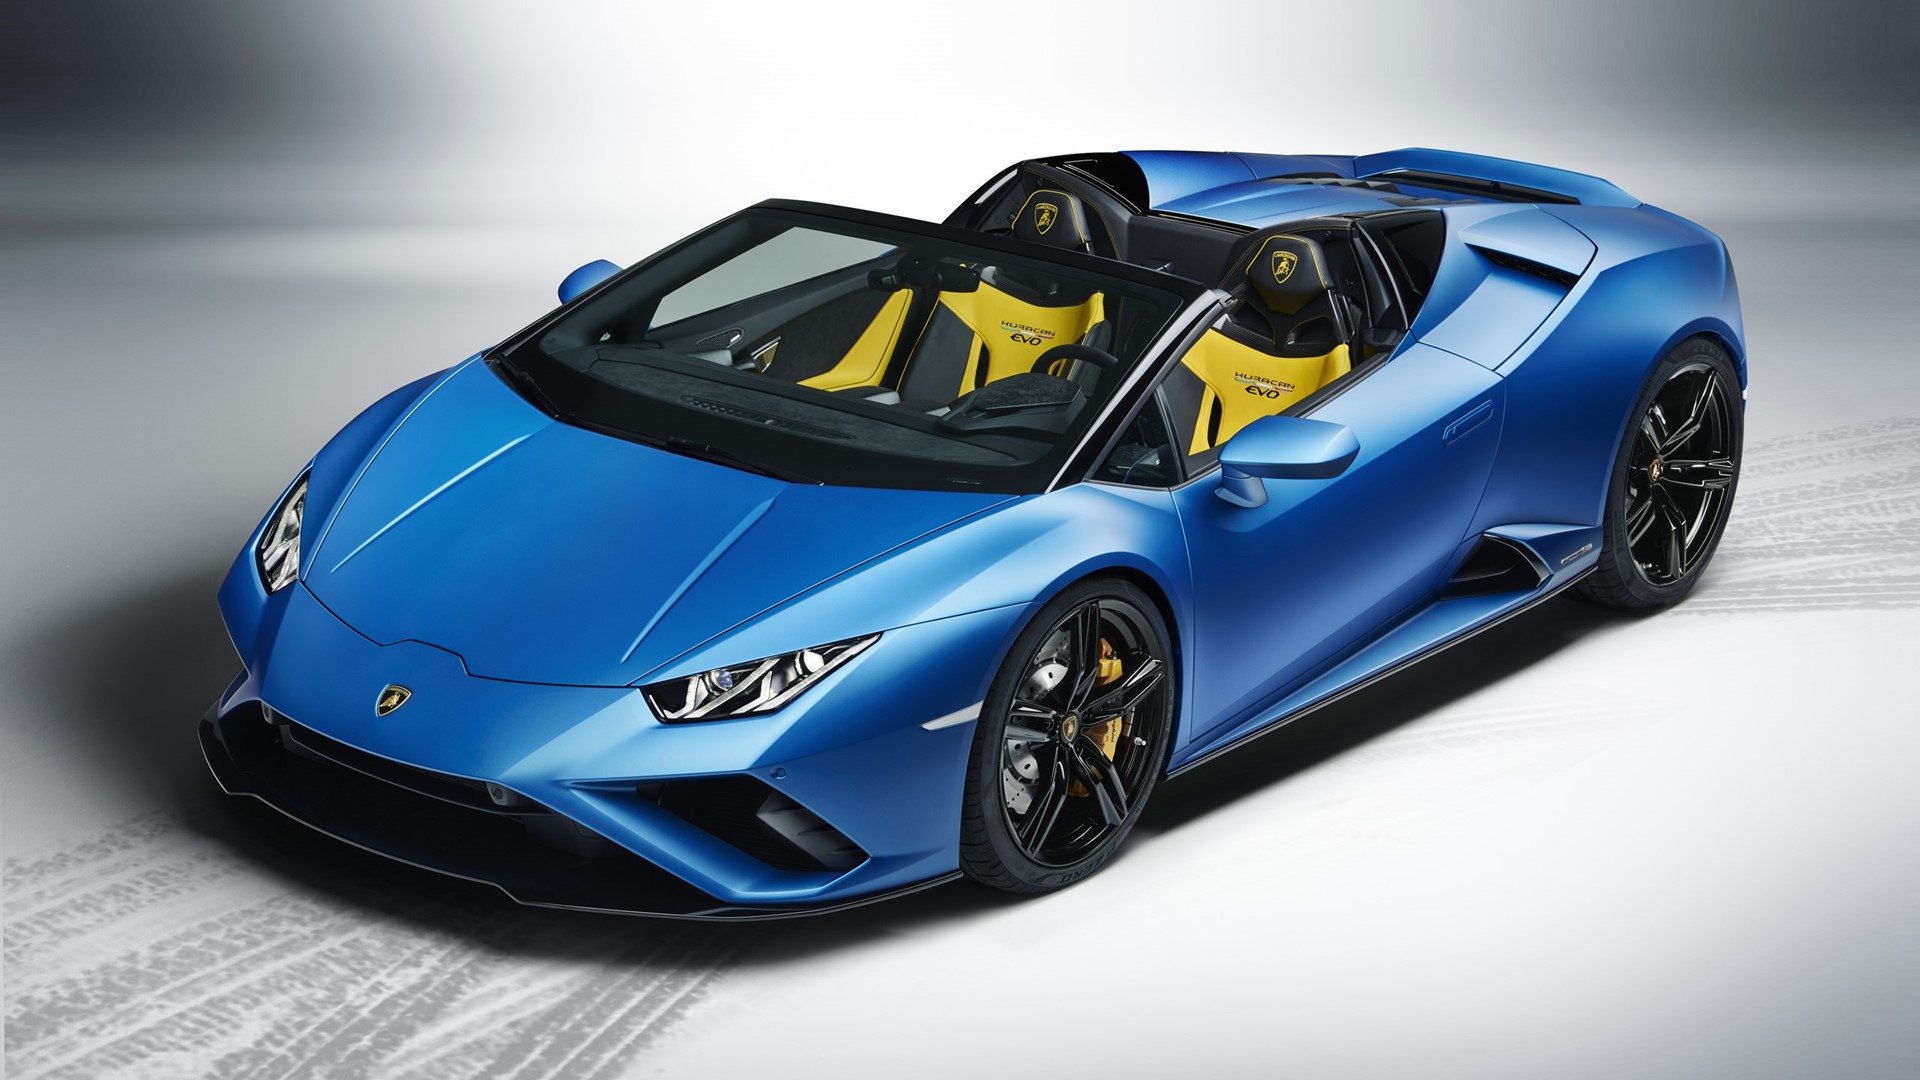 Automobili Lamborghini launches its first collector's digital stamp in collaboration with Bitstamps, dedicated to the Huracán EVO RWD Spyder - Image 1